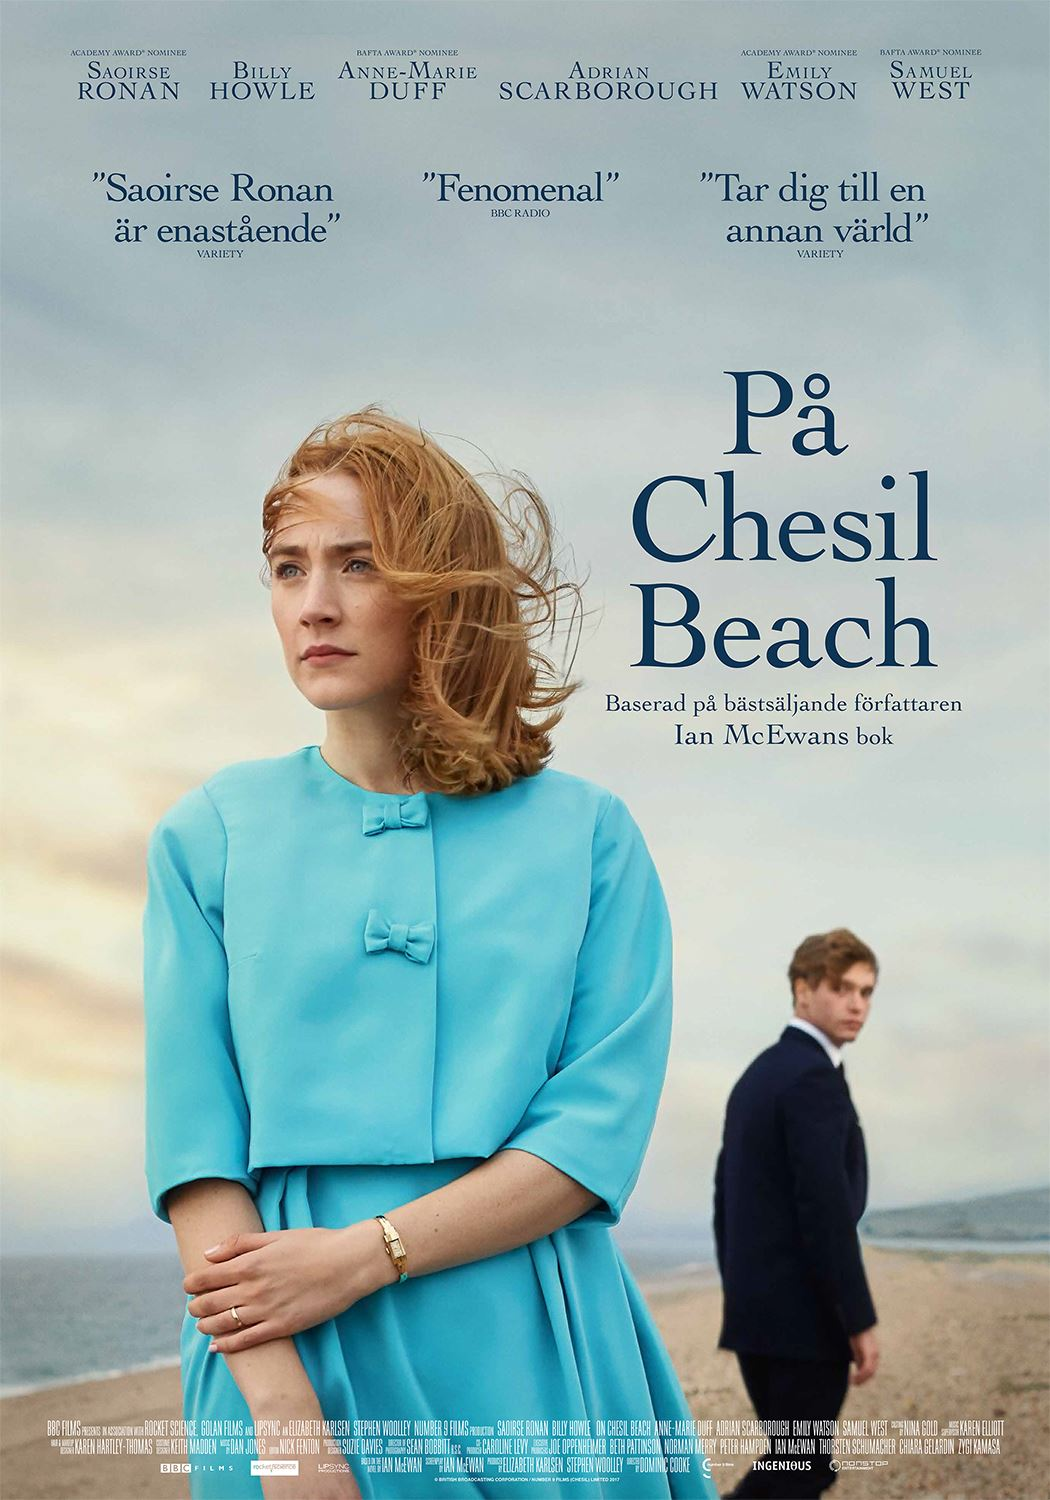 Bio: På Chesil Beach